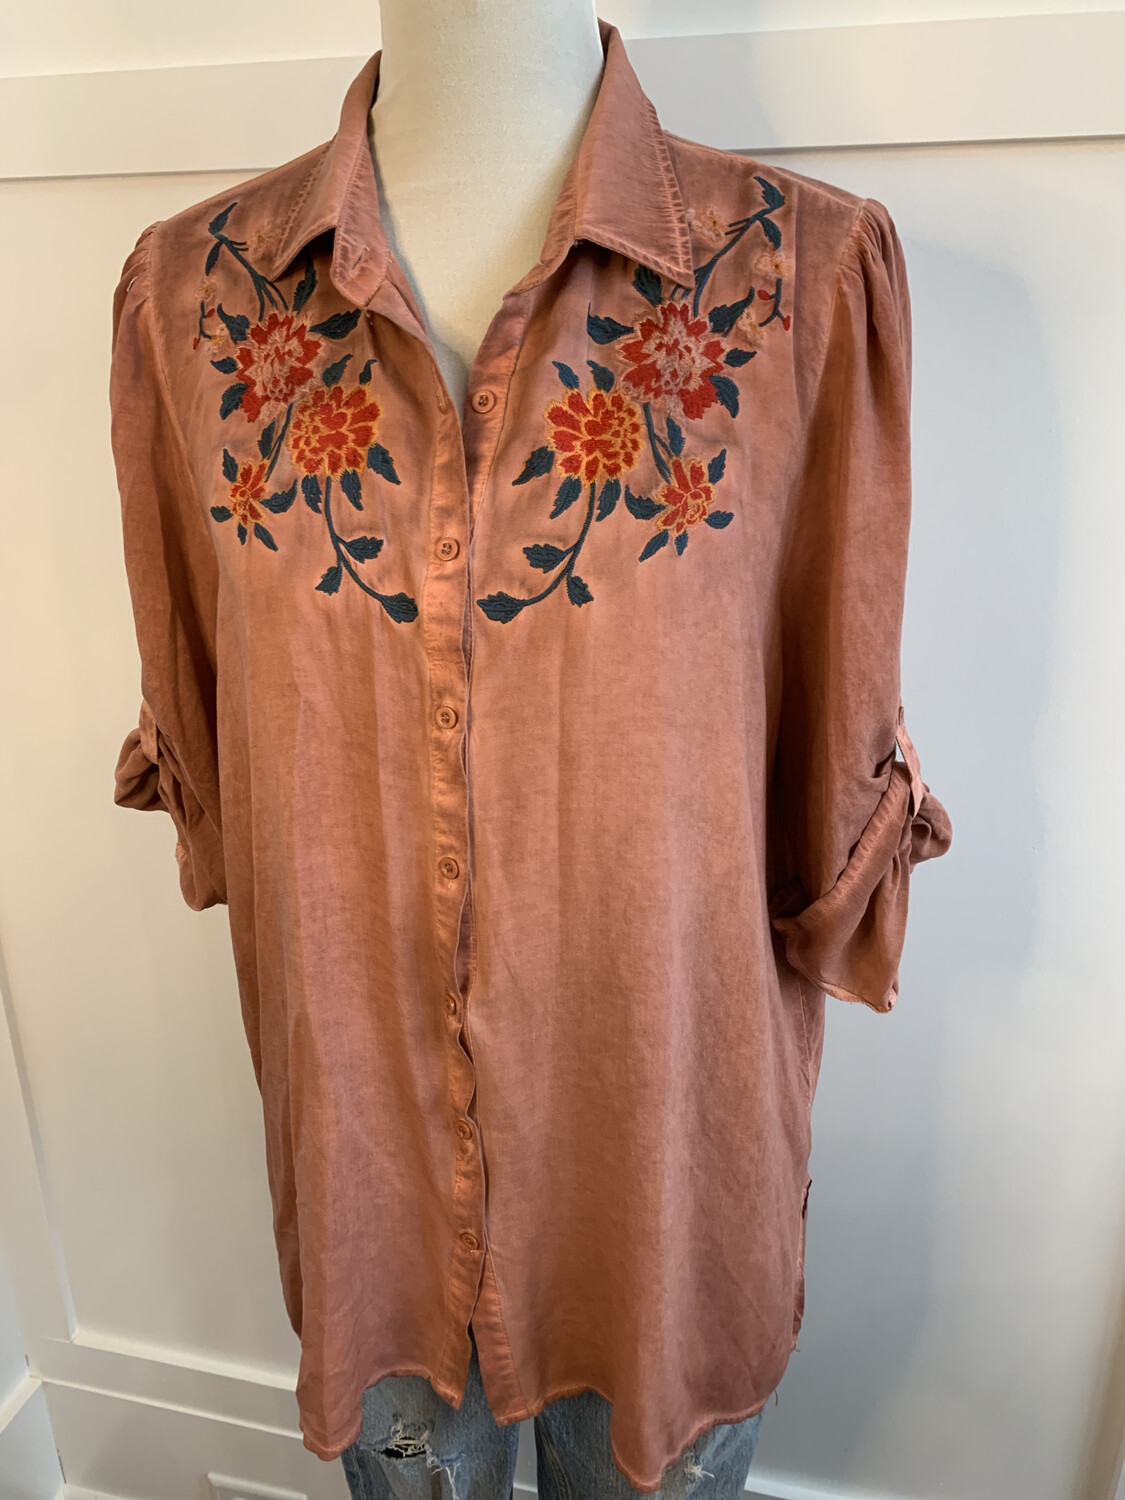 Andree Distressed Pink Floral Embroidered Top - L